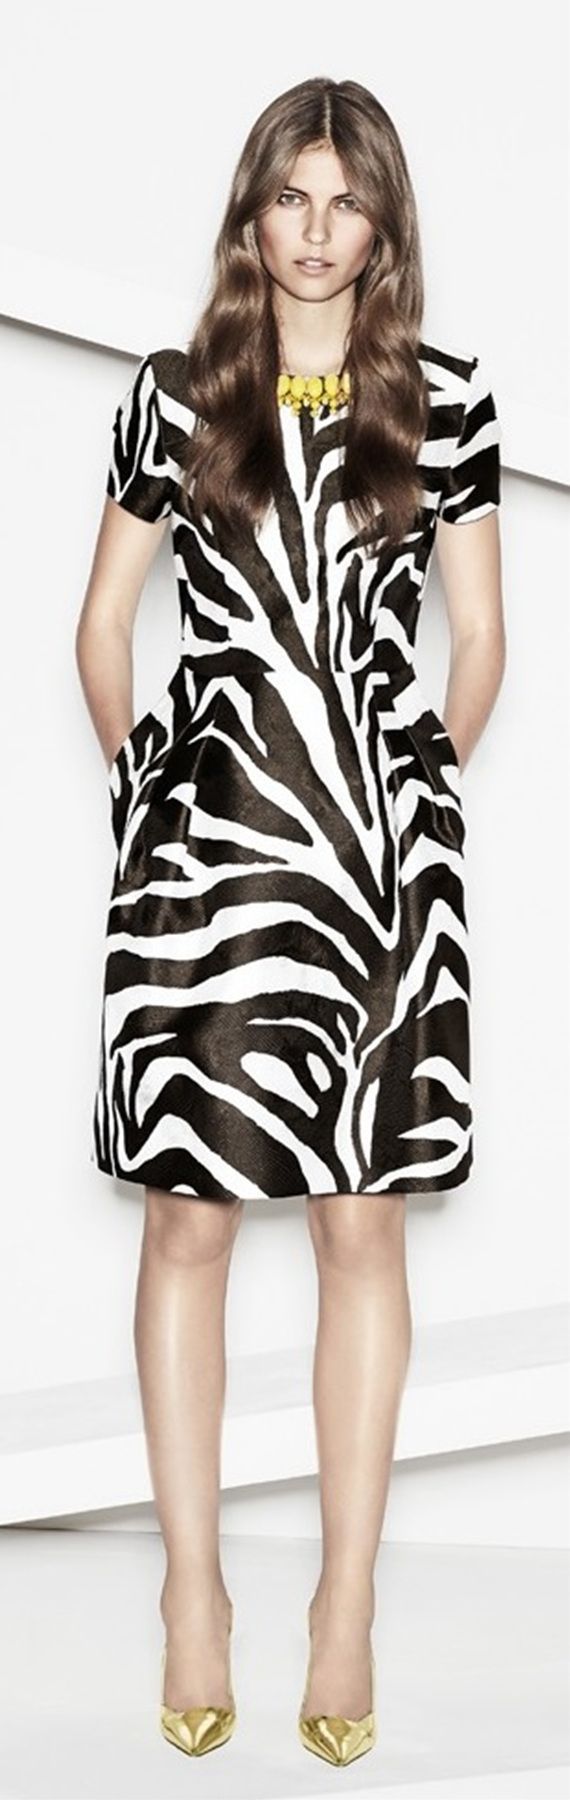 Idea to accessorize my zebra print dress differently than the usual red. Escada RTW Spring 2014